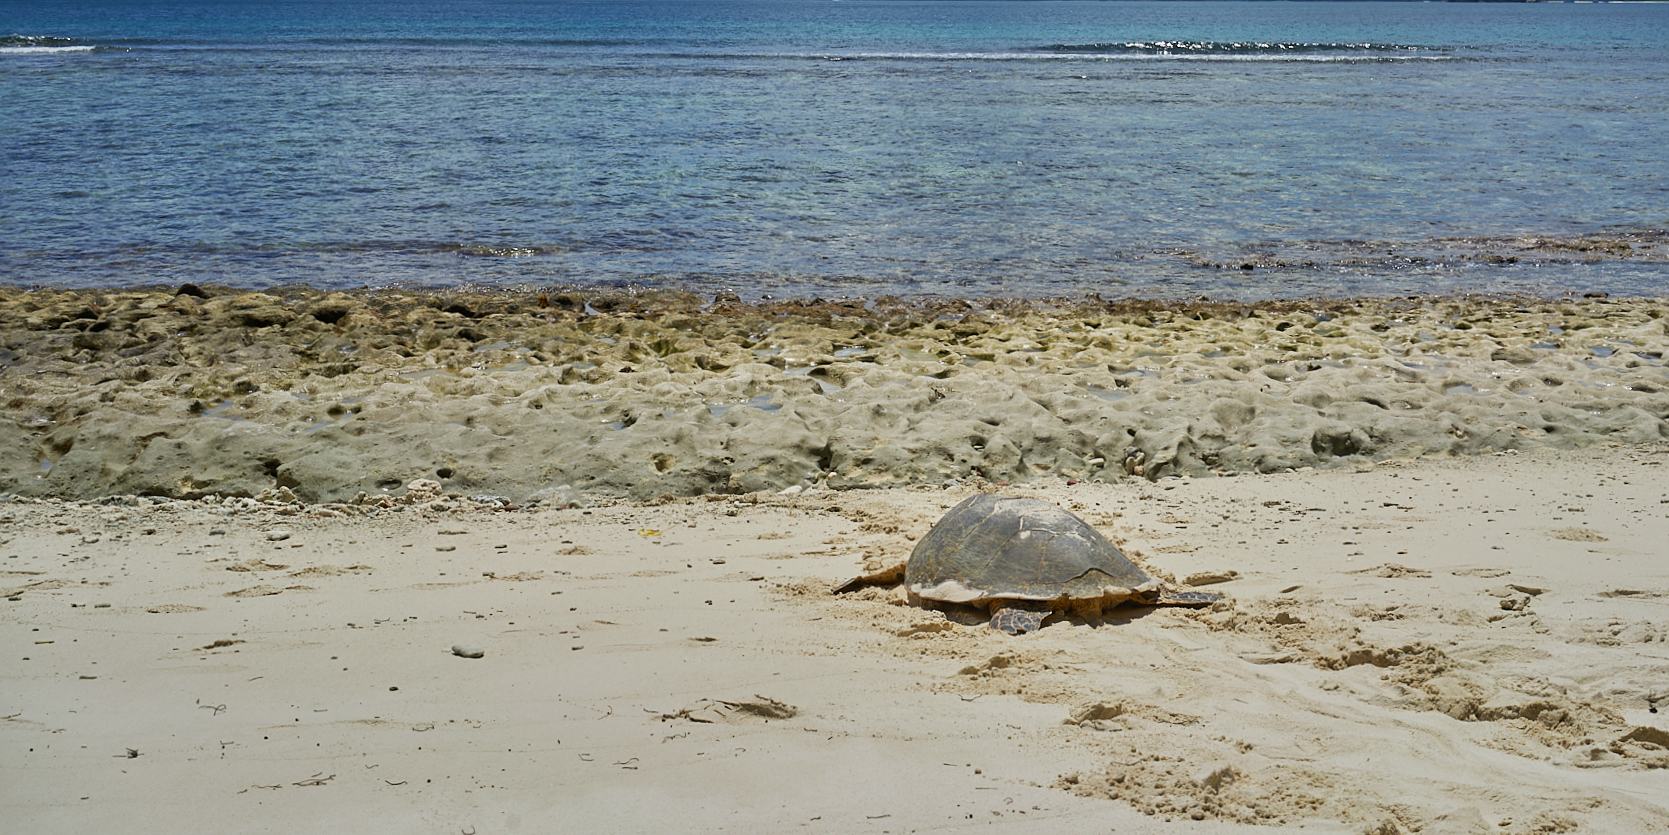 A hawksbill turtle returns to the ocean on Curieuse Island.